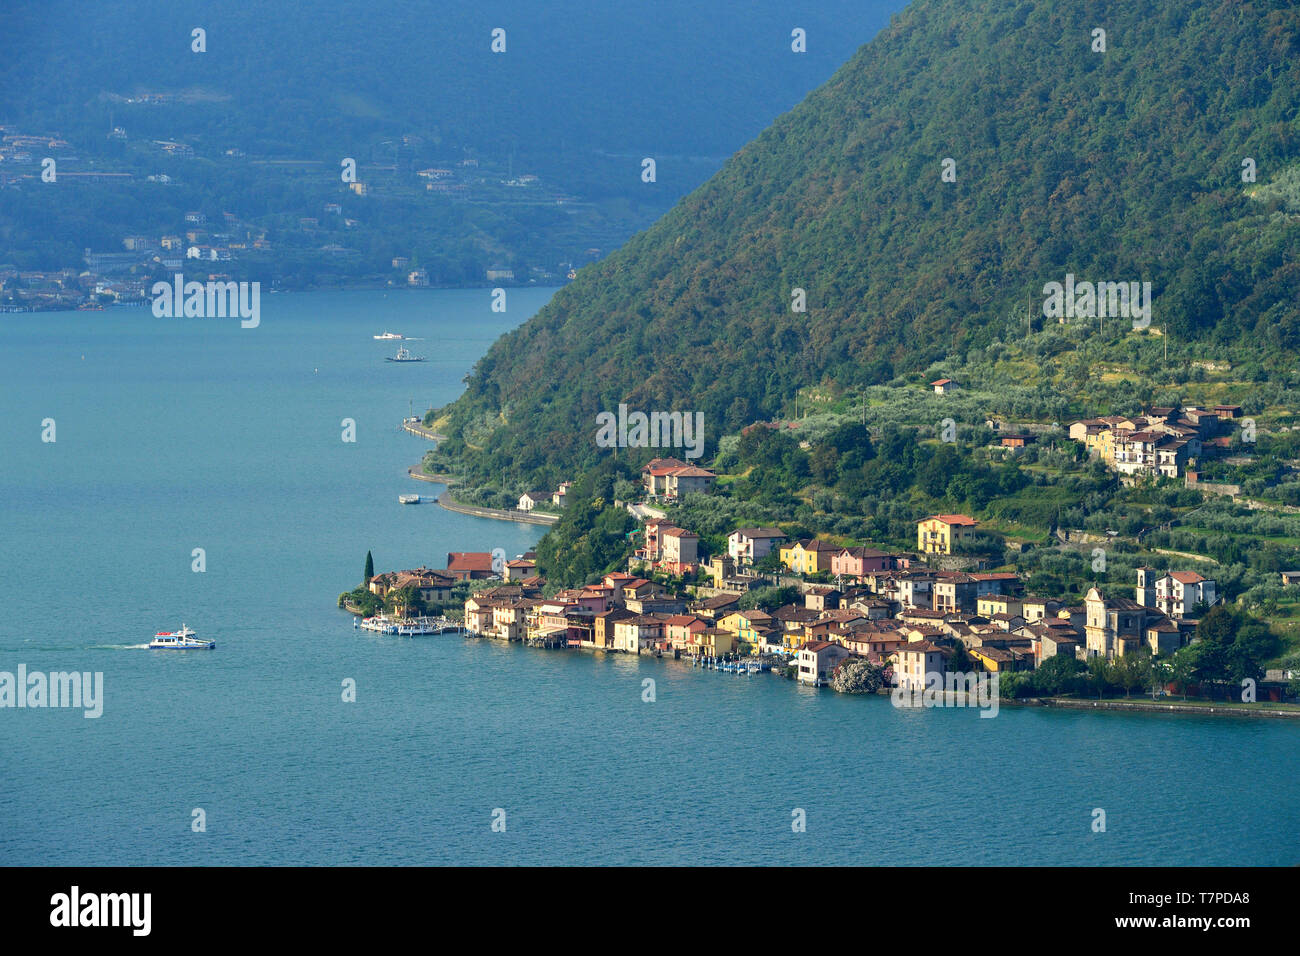 Italy, Lombardy, Iseo lake (Il Lago d'Iseo), Monte Isola island, Carzano village - Stock Image